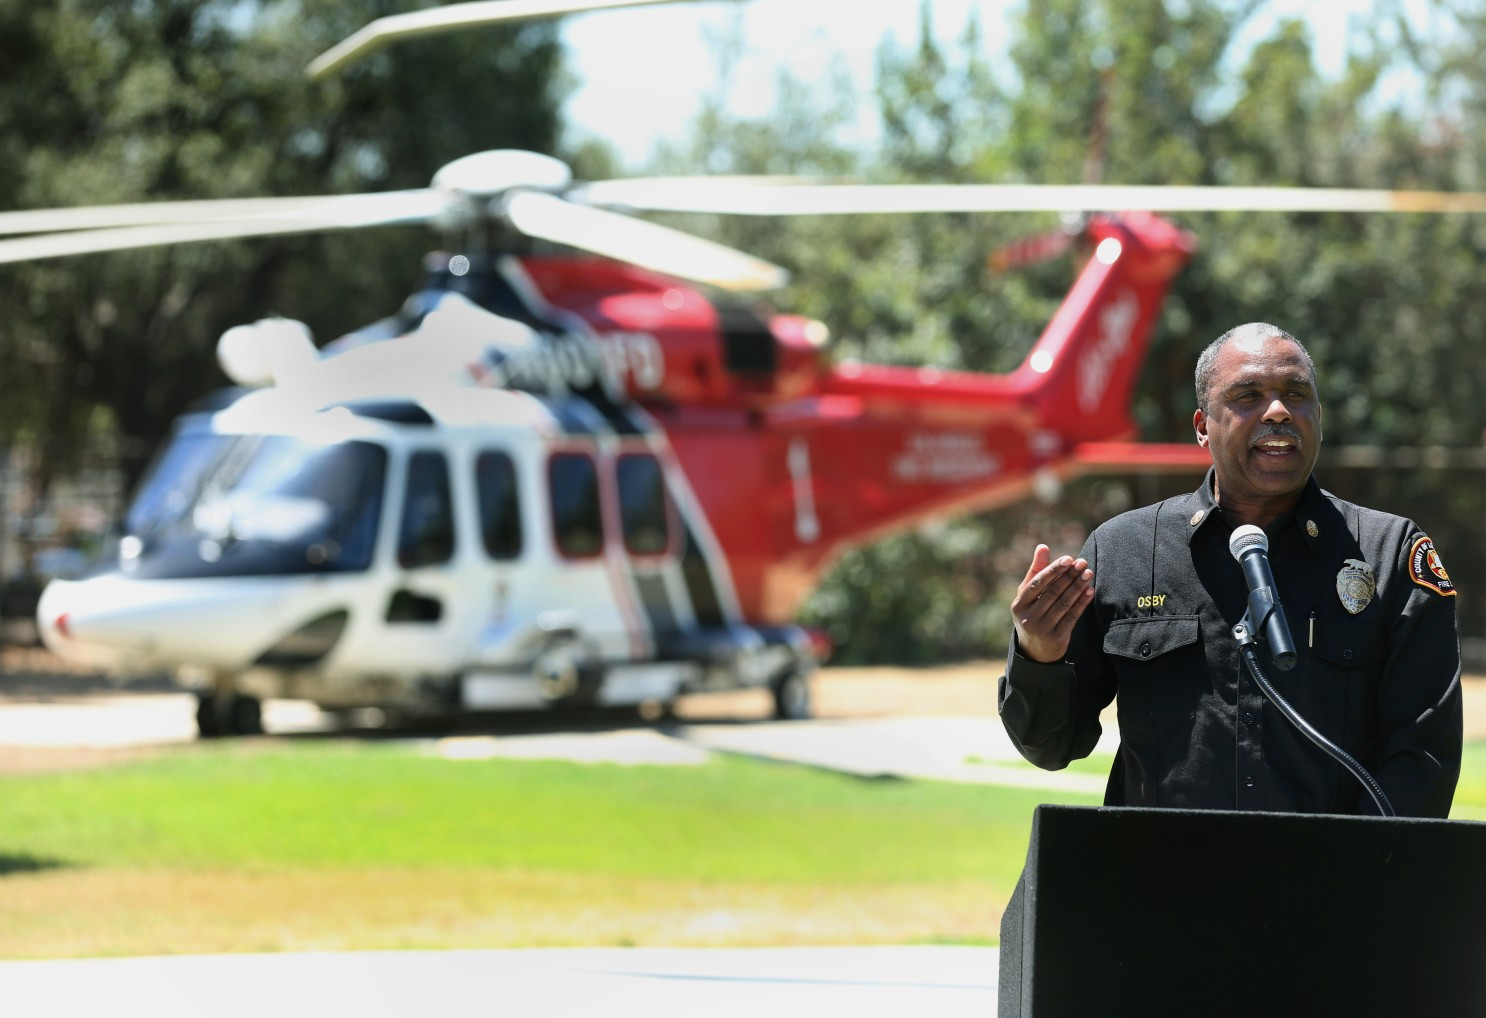 The Los Angeles County Fire Department employees whose vaccination data was published online include Fire Chief Daryl Osby, shown speaking at a news conference last month. (Mel Melcon/Los Angeles Times)